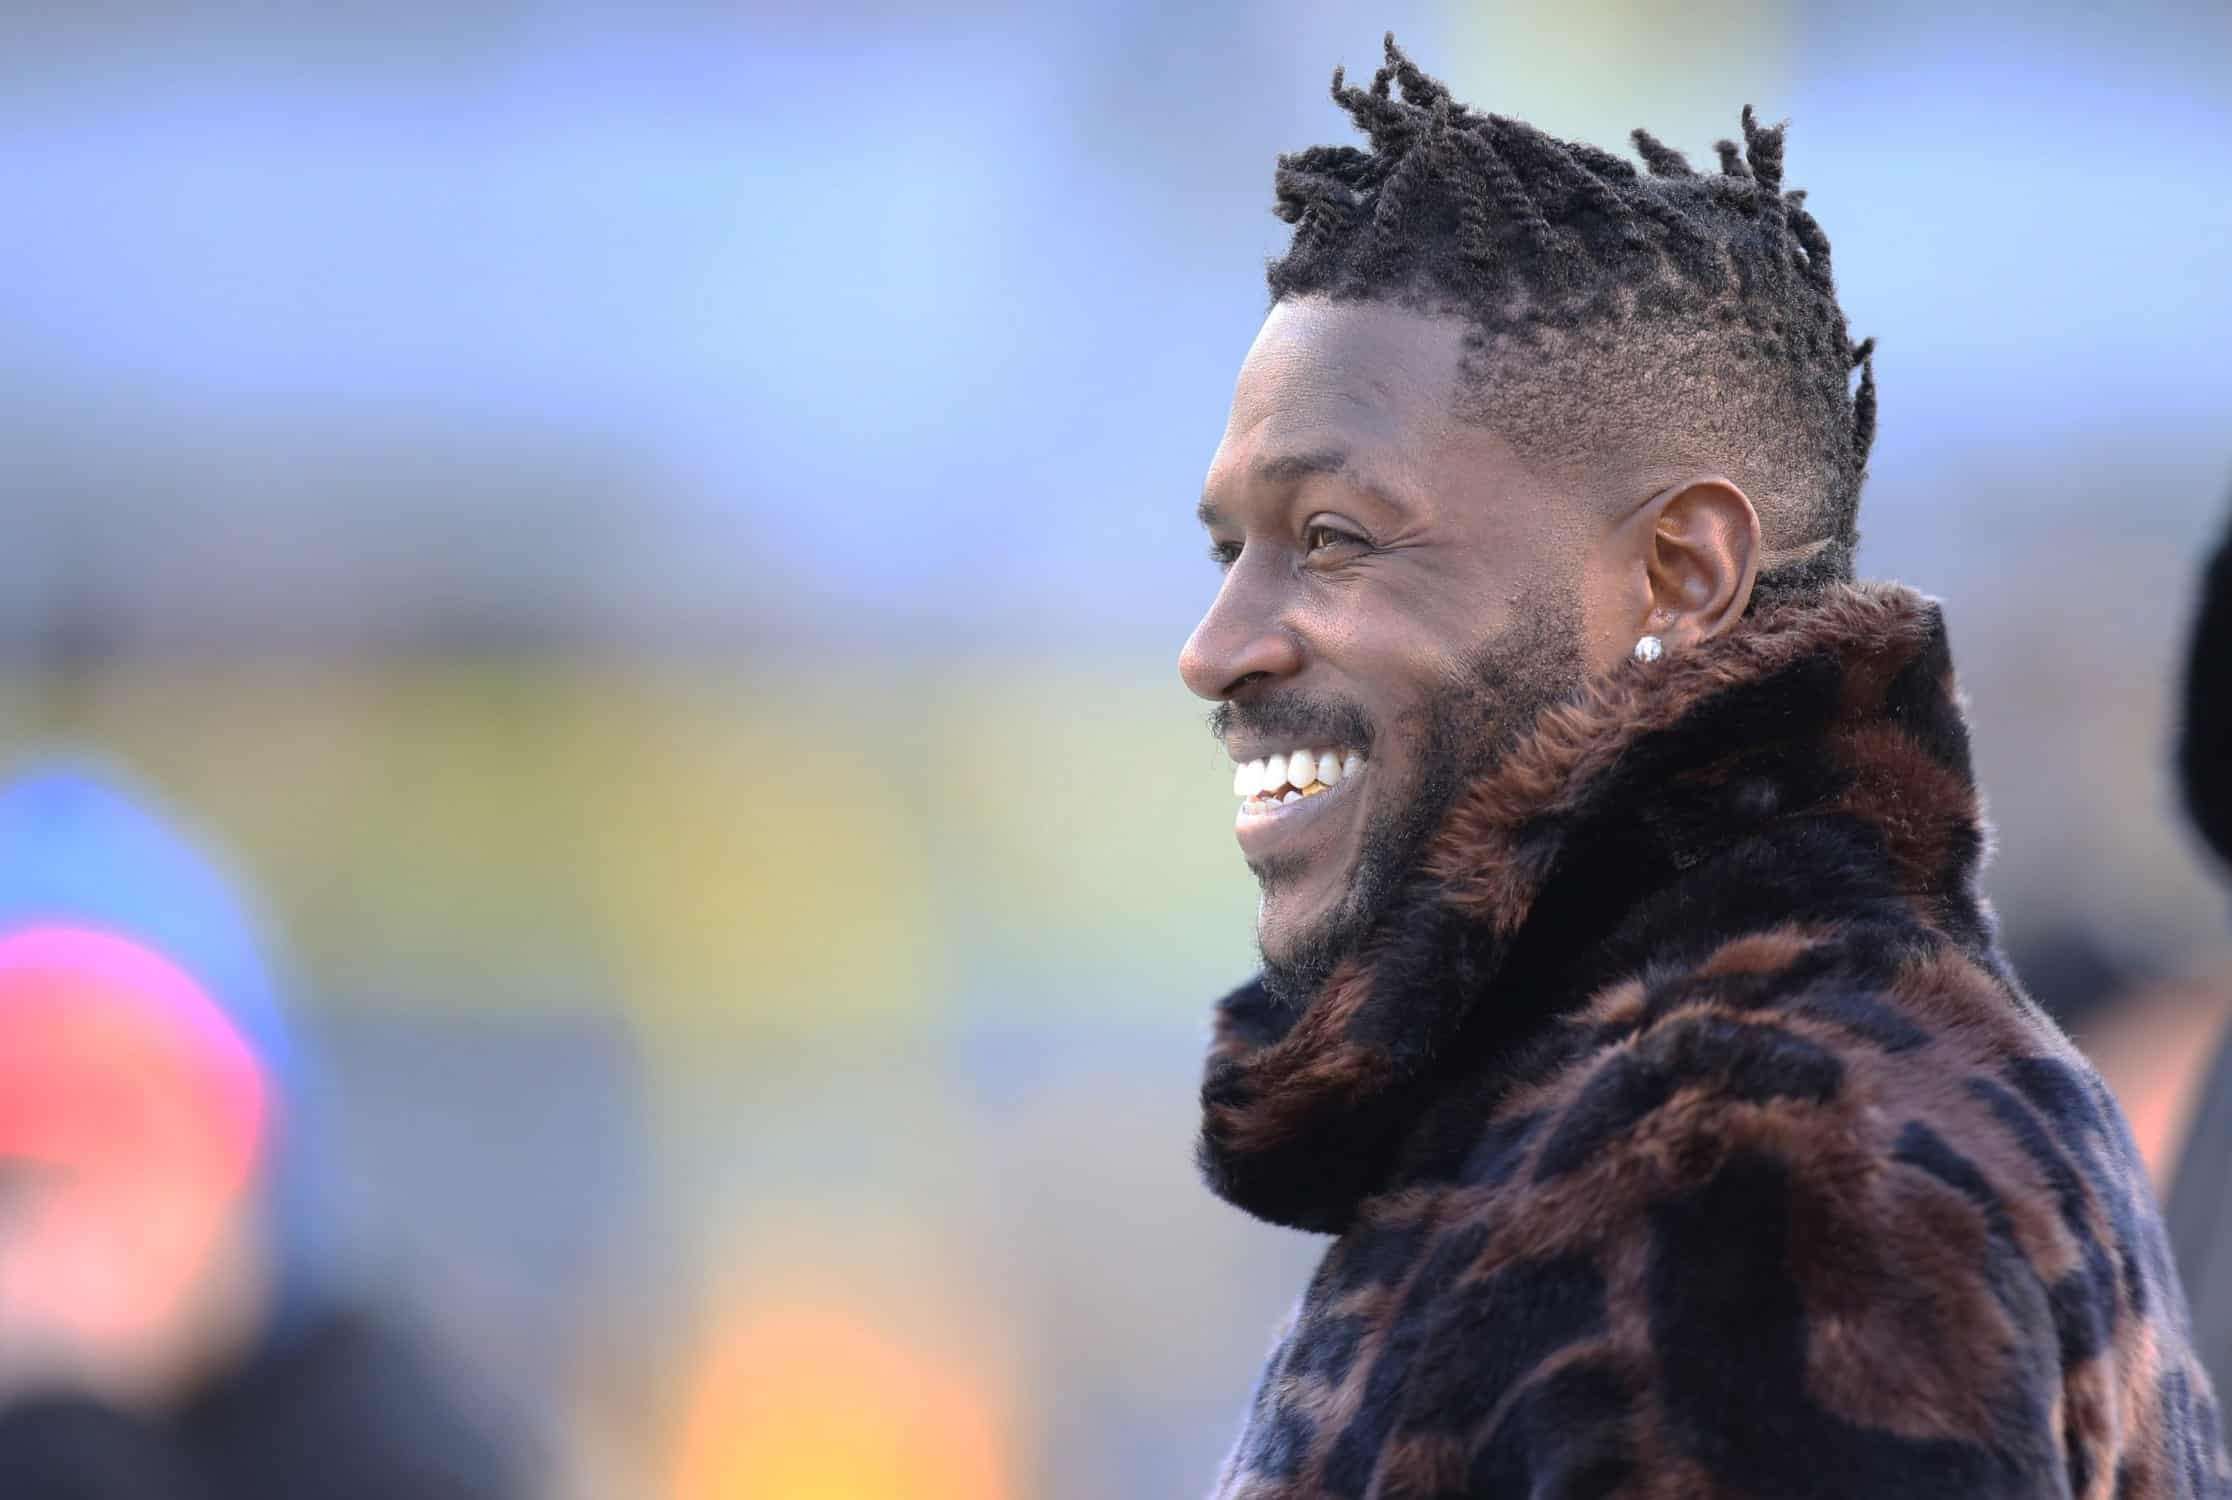 Patriots sign wide receiver Antonio Brown hours after the Raiders release him